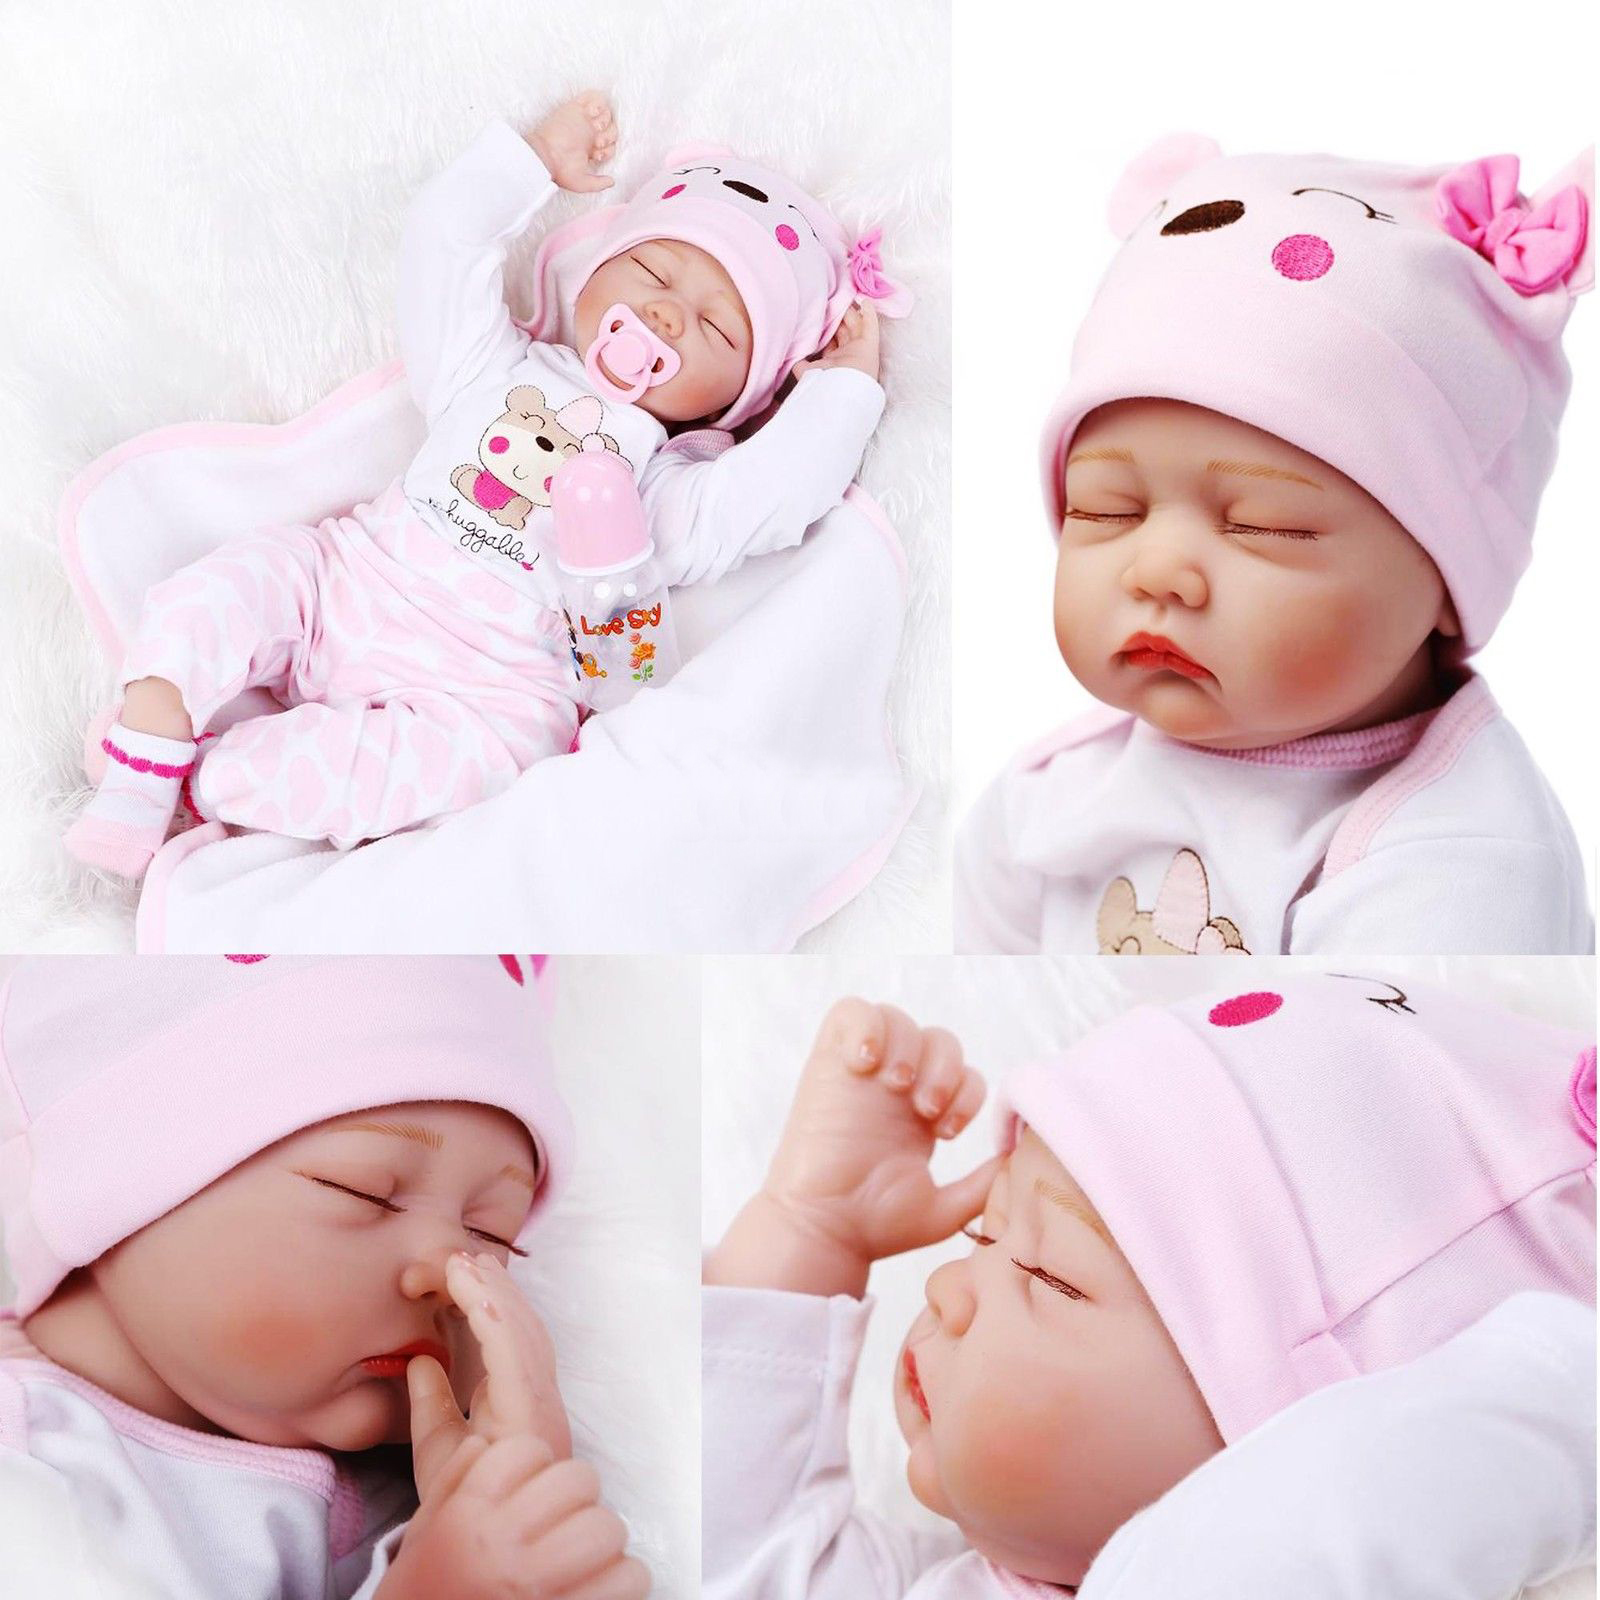 Ktaxon Reborn Baby Doll Soft Silicone vinyl 22inch 55cm Lovely Lifelike Cute Baby Boy Girl Toy Pink sleeping baby doll cute girl